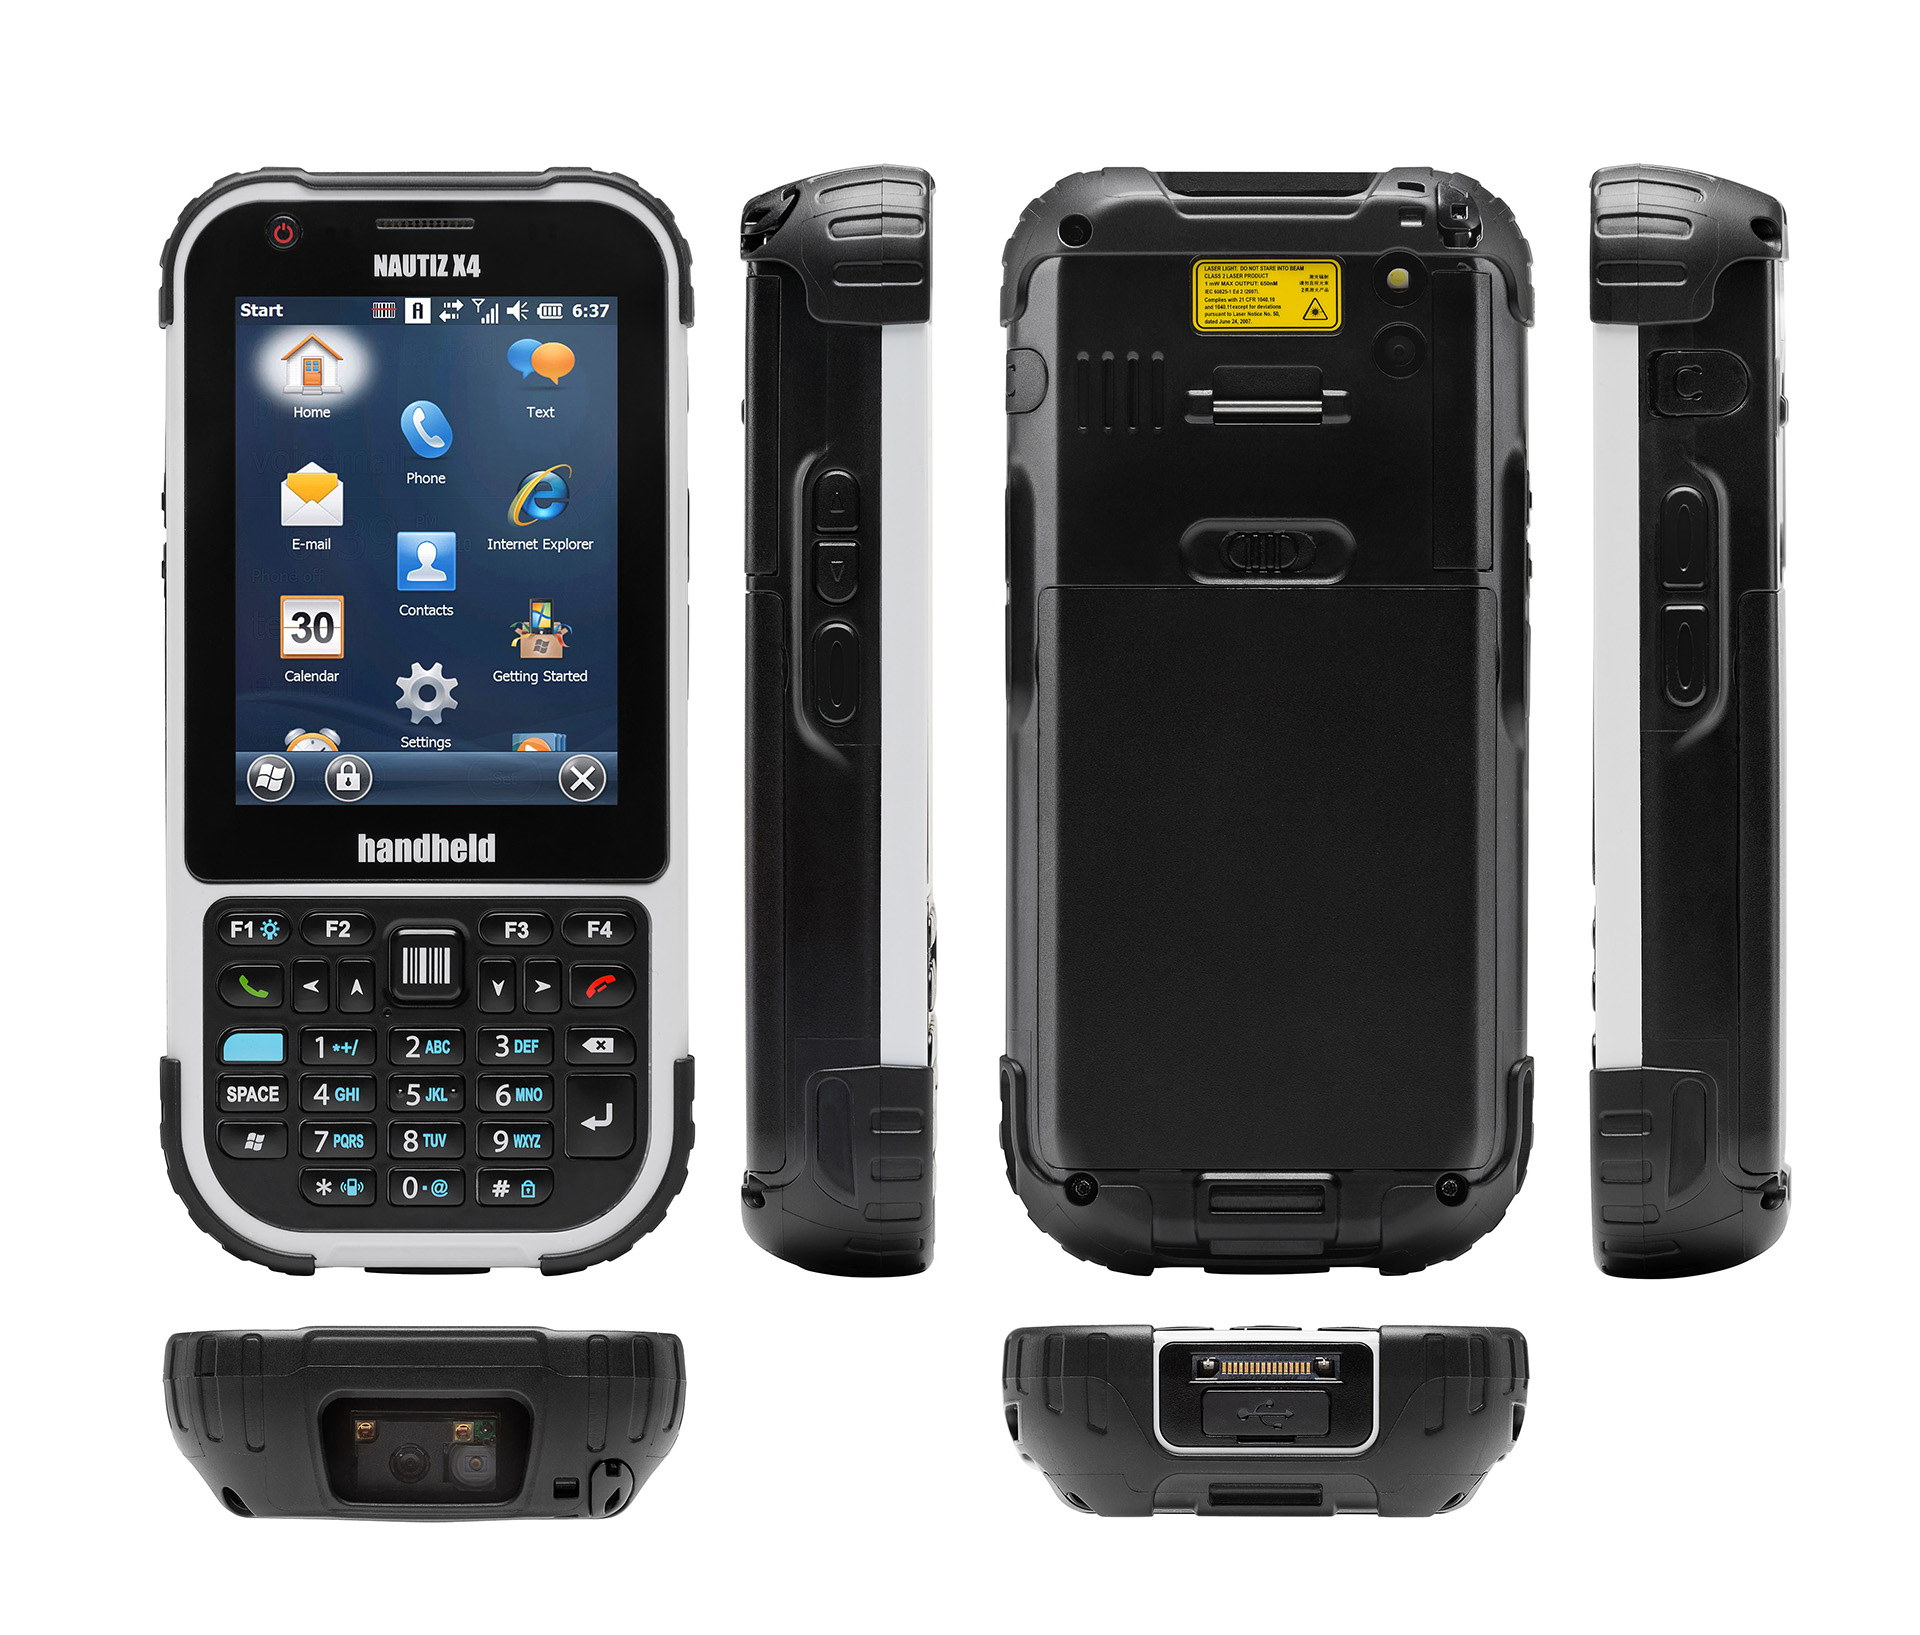 Nautiz-X4-handheld-rugged-every-angle.jpg